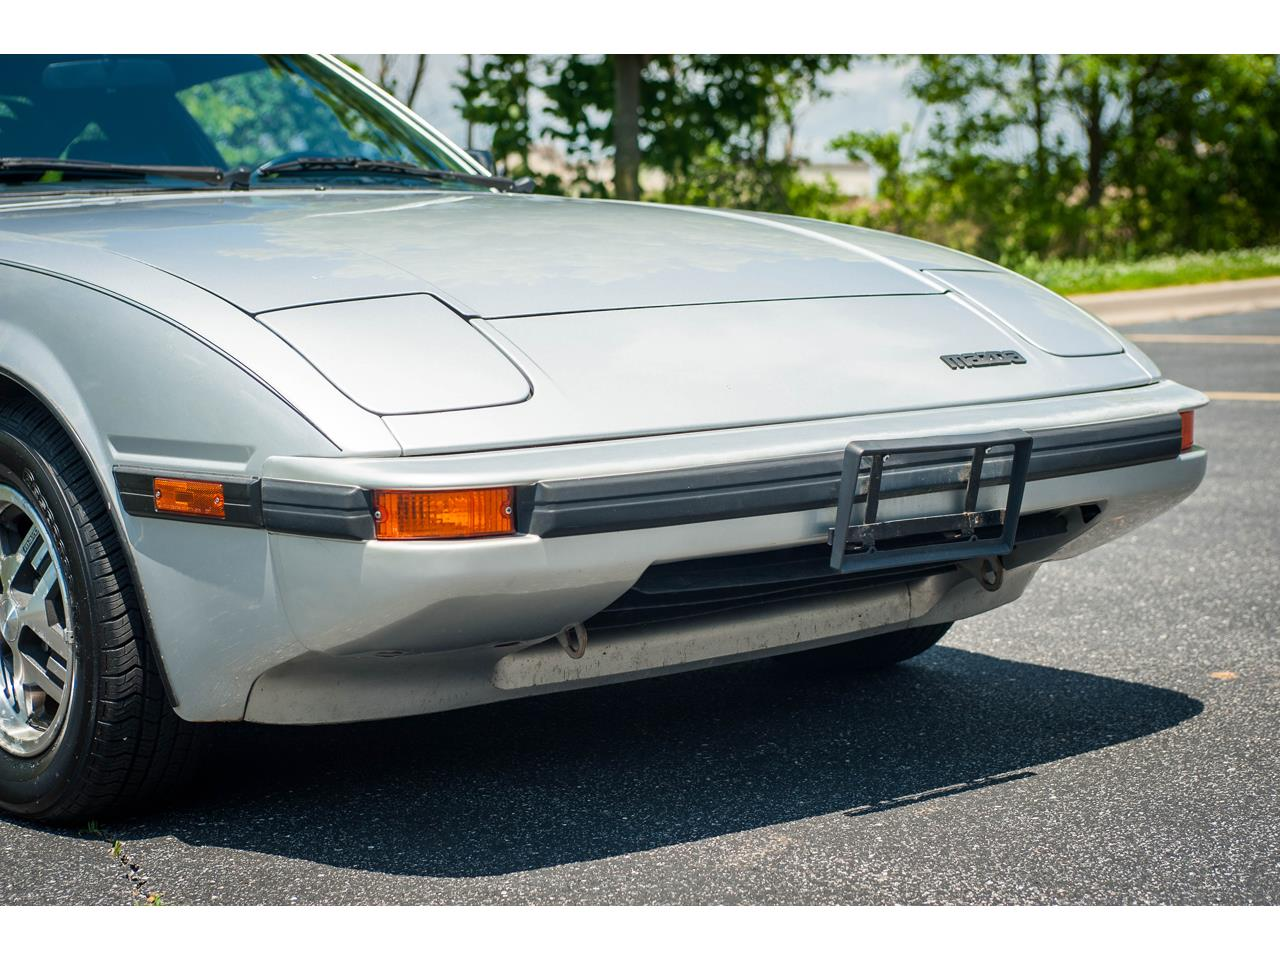 Large Picture of 1982 RX-7 located in Illinois Offered by Gateway Classic Cars - St. Louis - QB9V